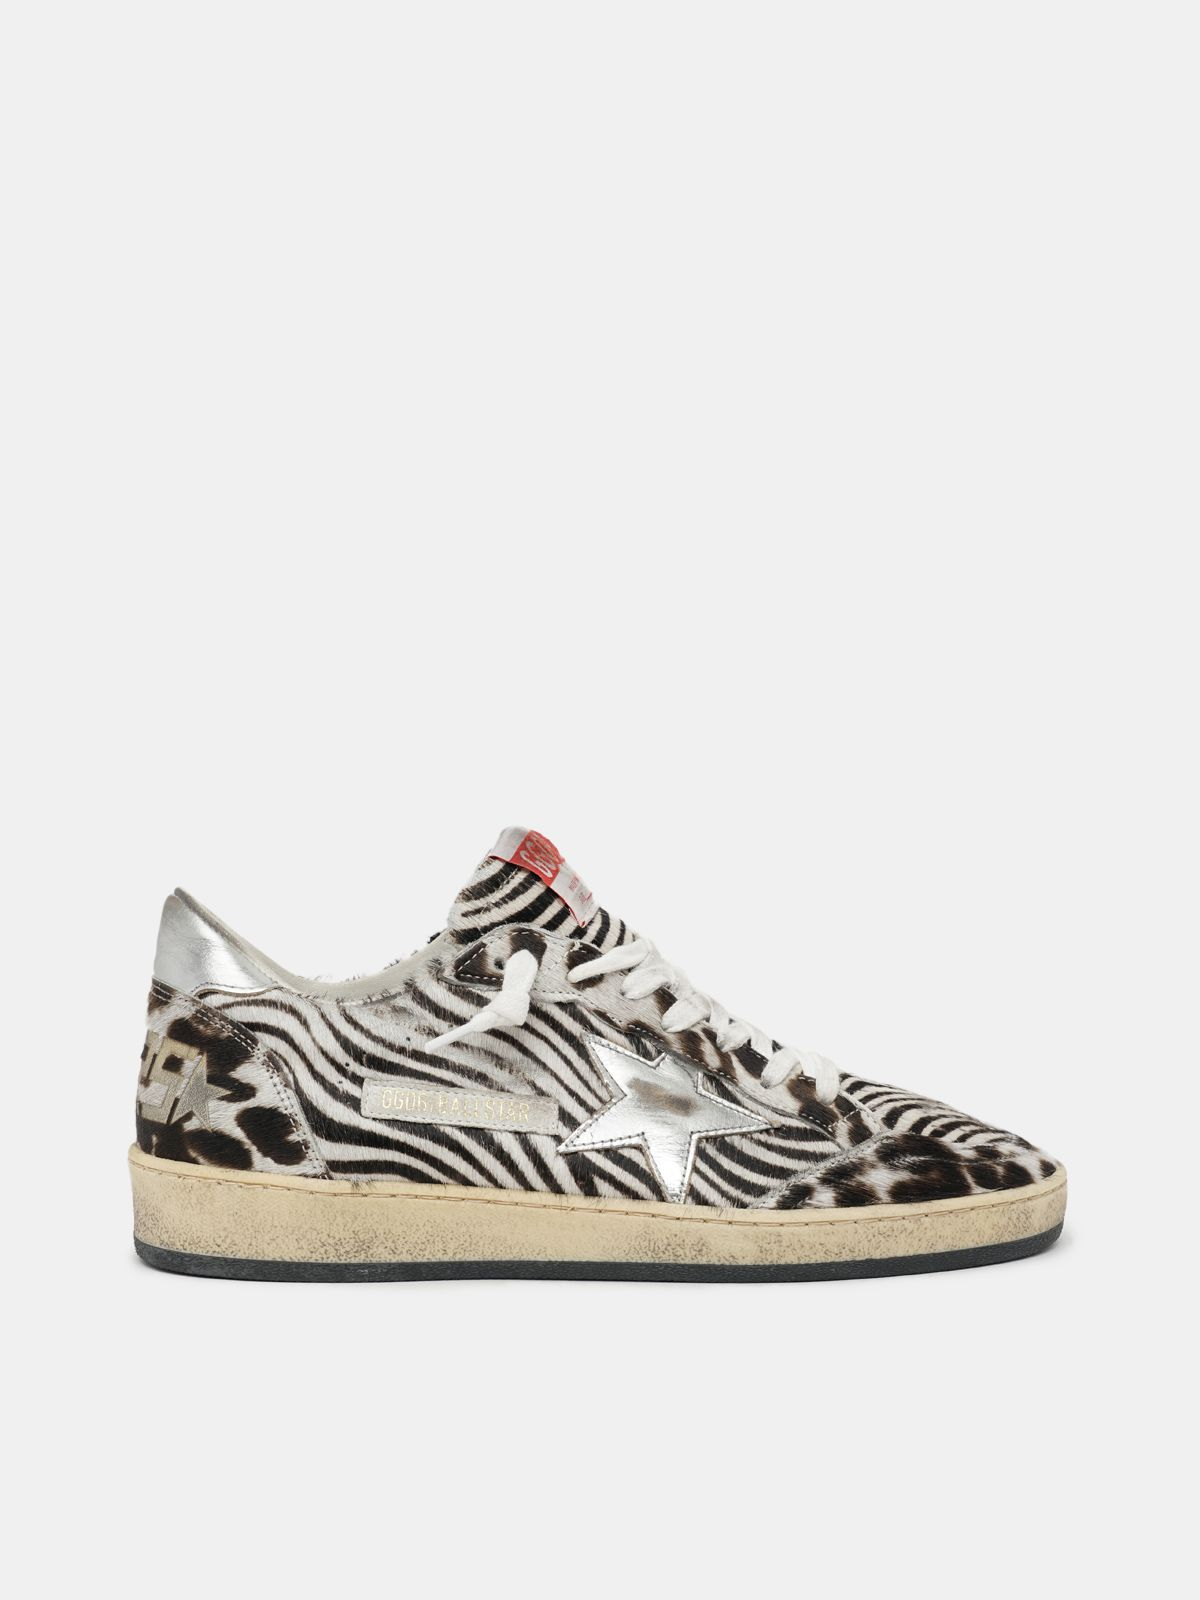 Jungle Ball Star sneakers in pony skin with silver laminated star